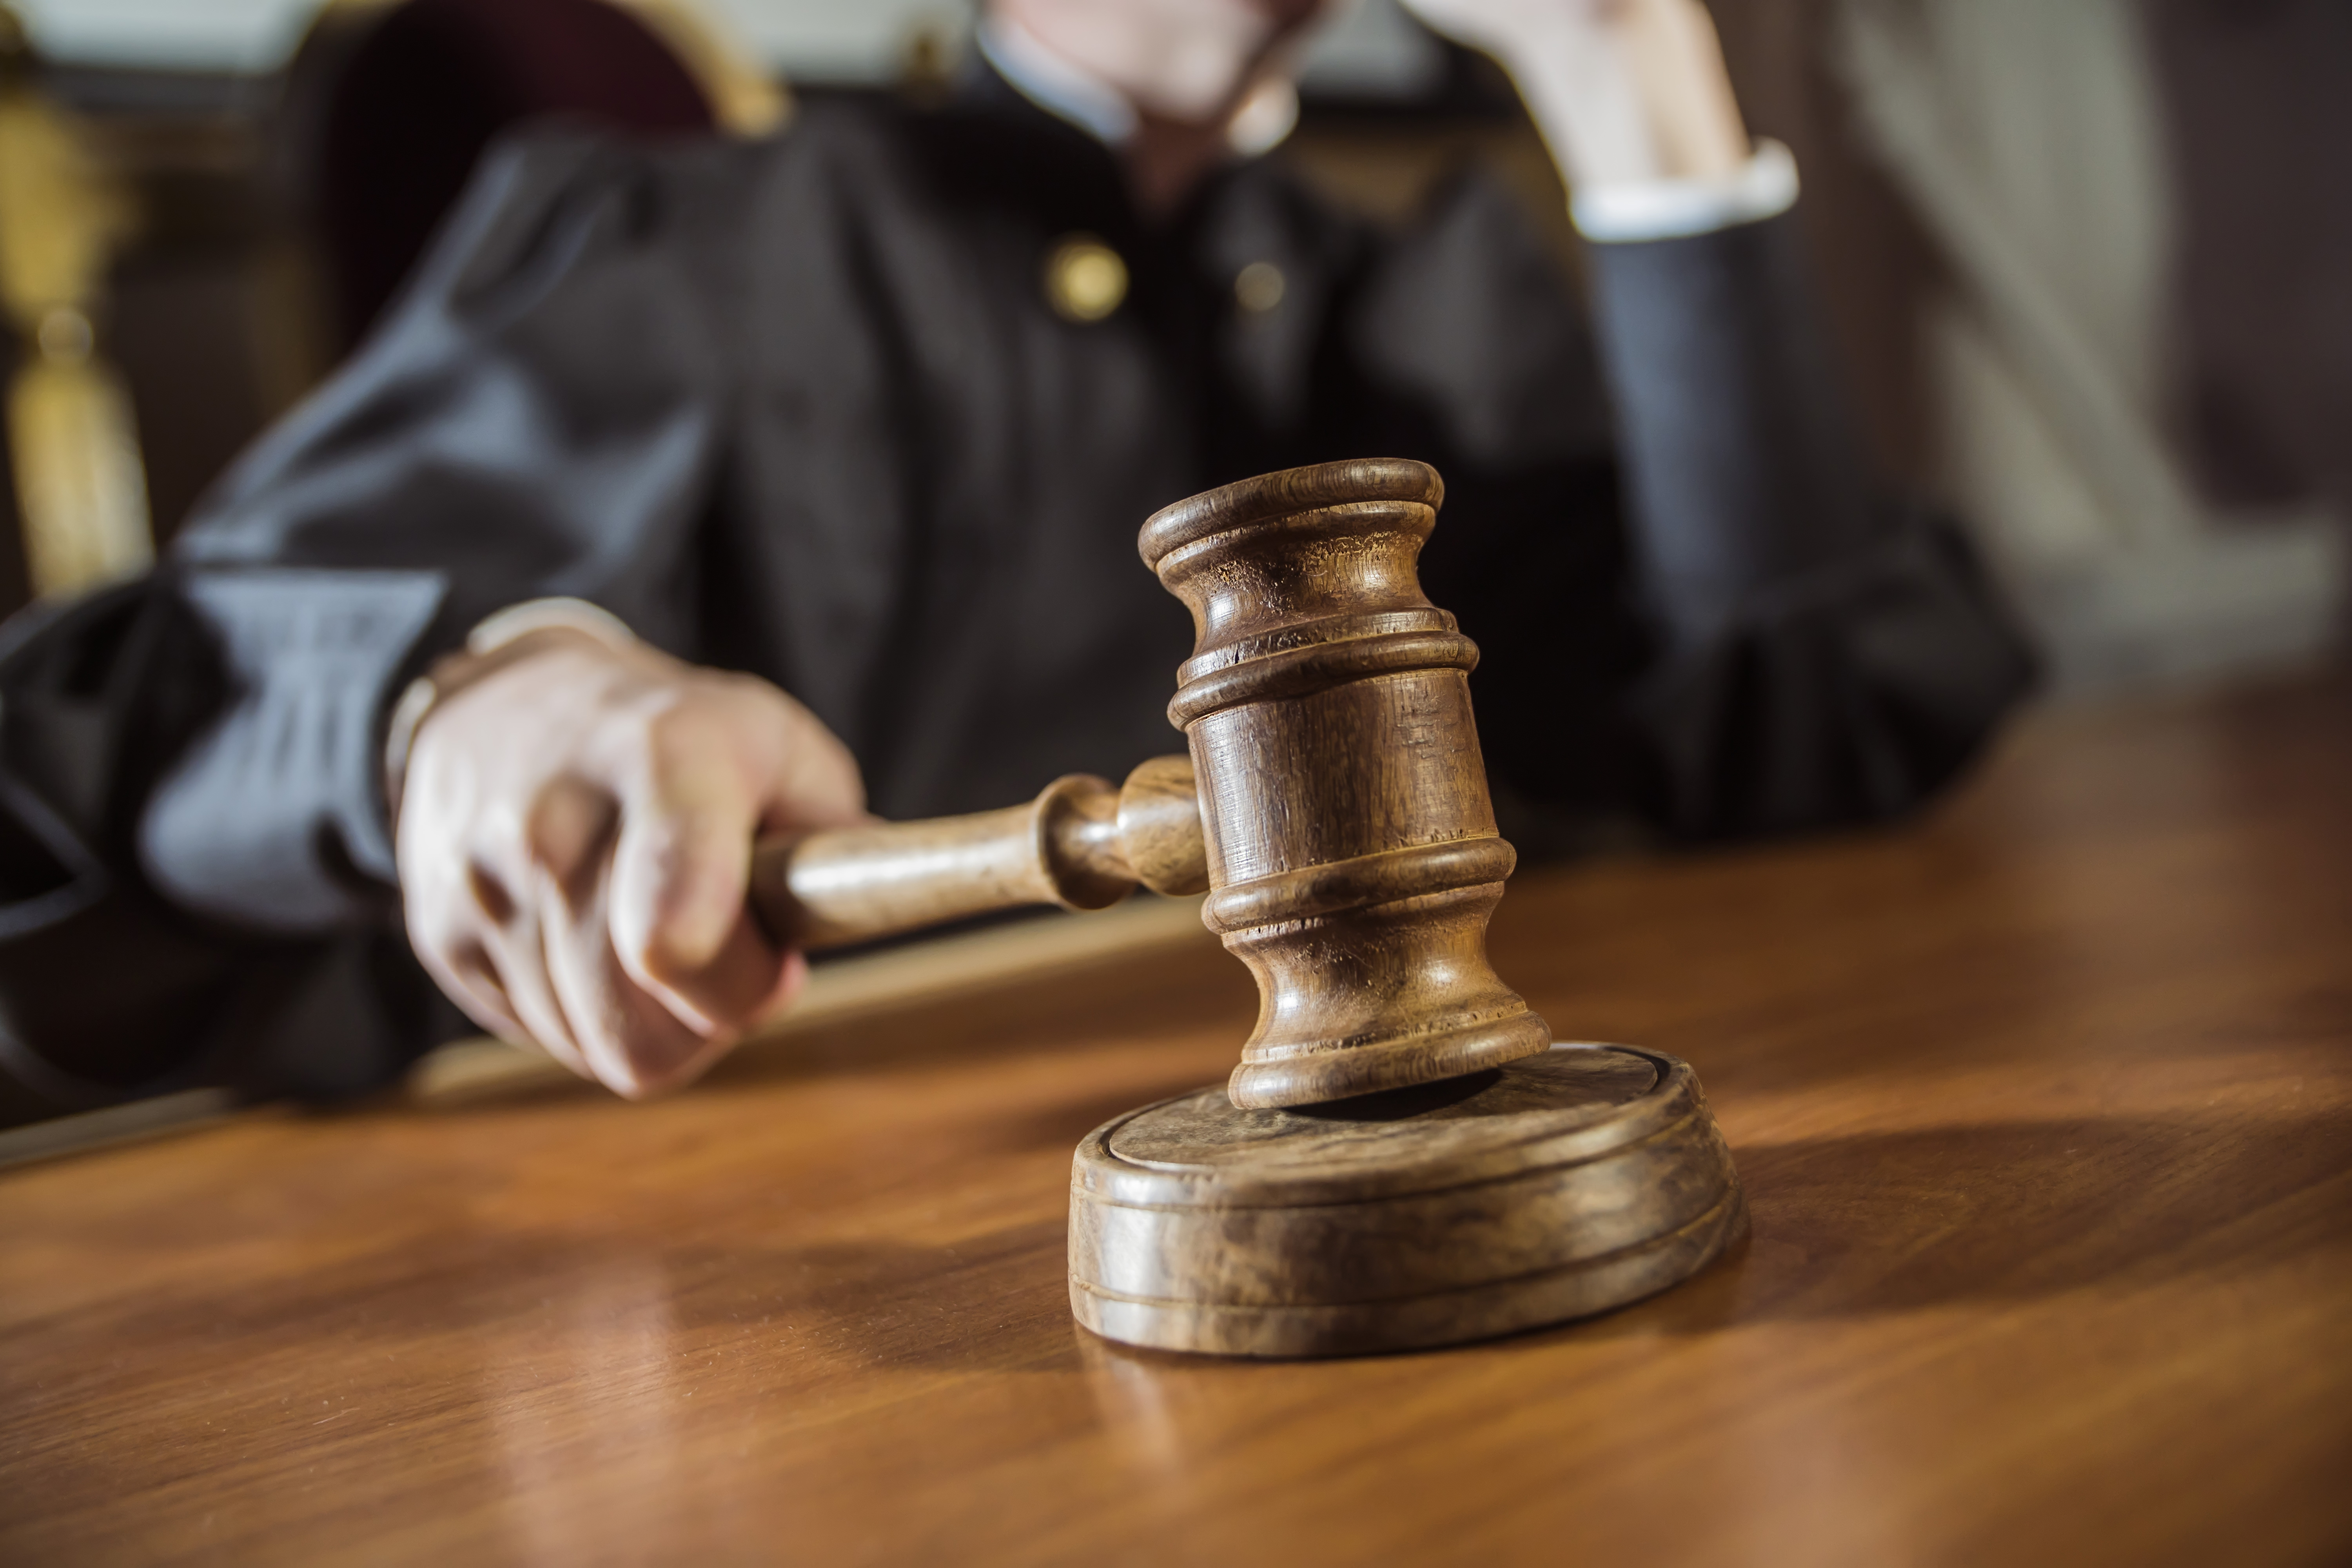 A man was sentenced to seven years in prison after pleading guilty to a drug charge related to a fatal fentanyl and heroin overdose on March 6, 2019, in Crystal Lake.